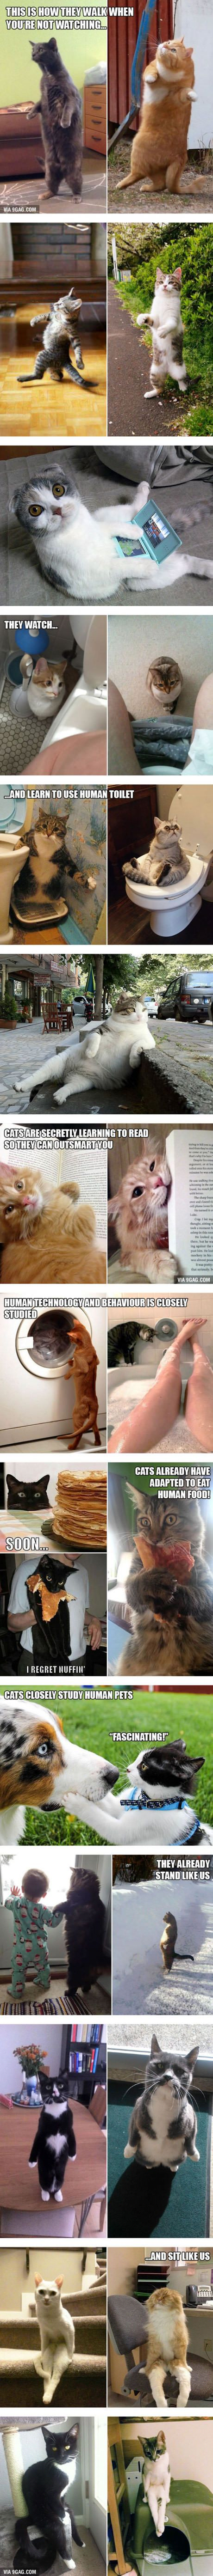 Proof That Cats Are Evolving Into Humans Read more at